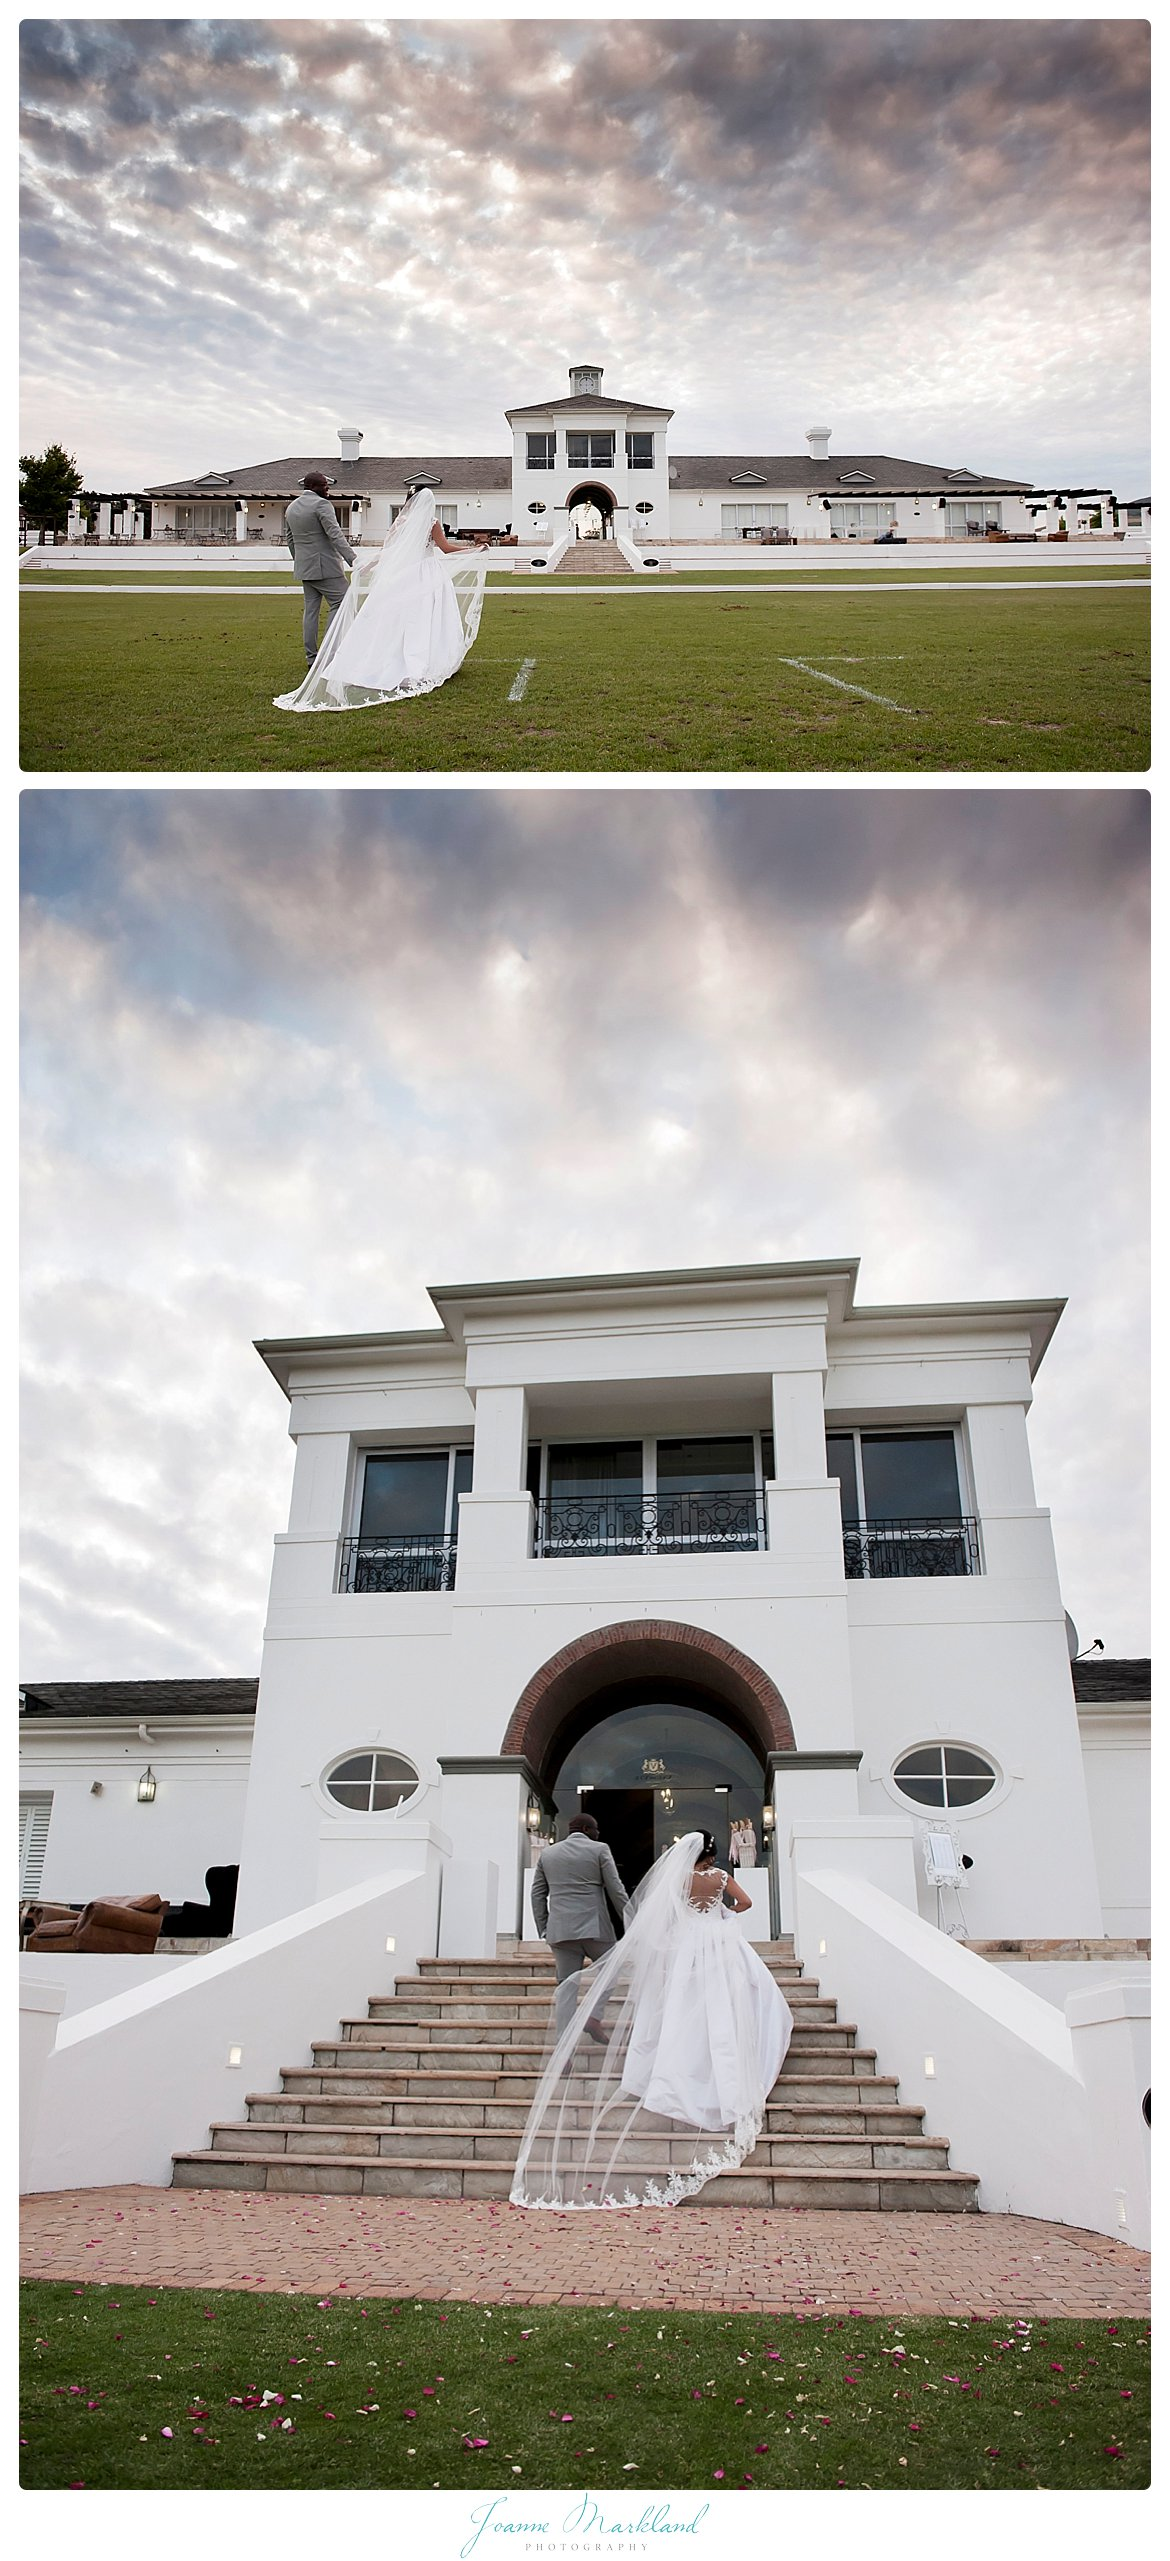 Val_de_vie_wedding_joanne_markland_photography_paarl-052